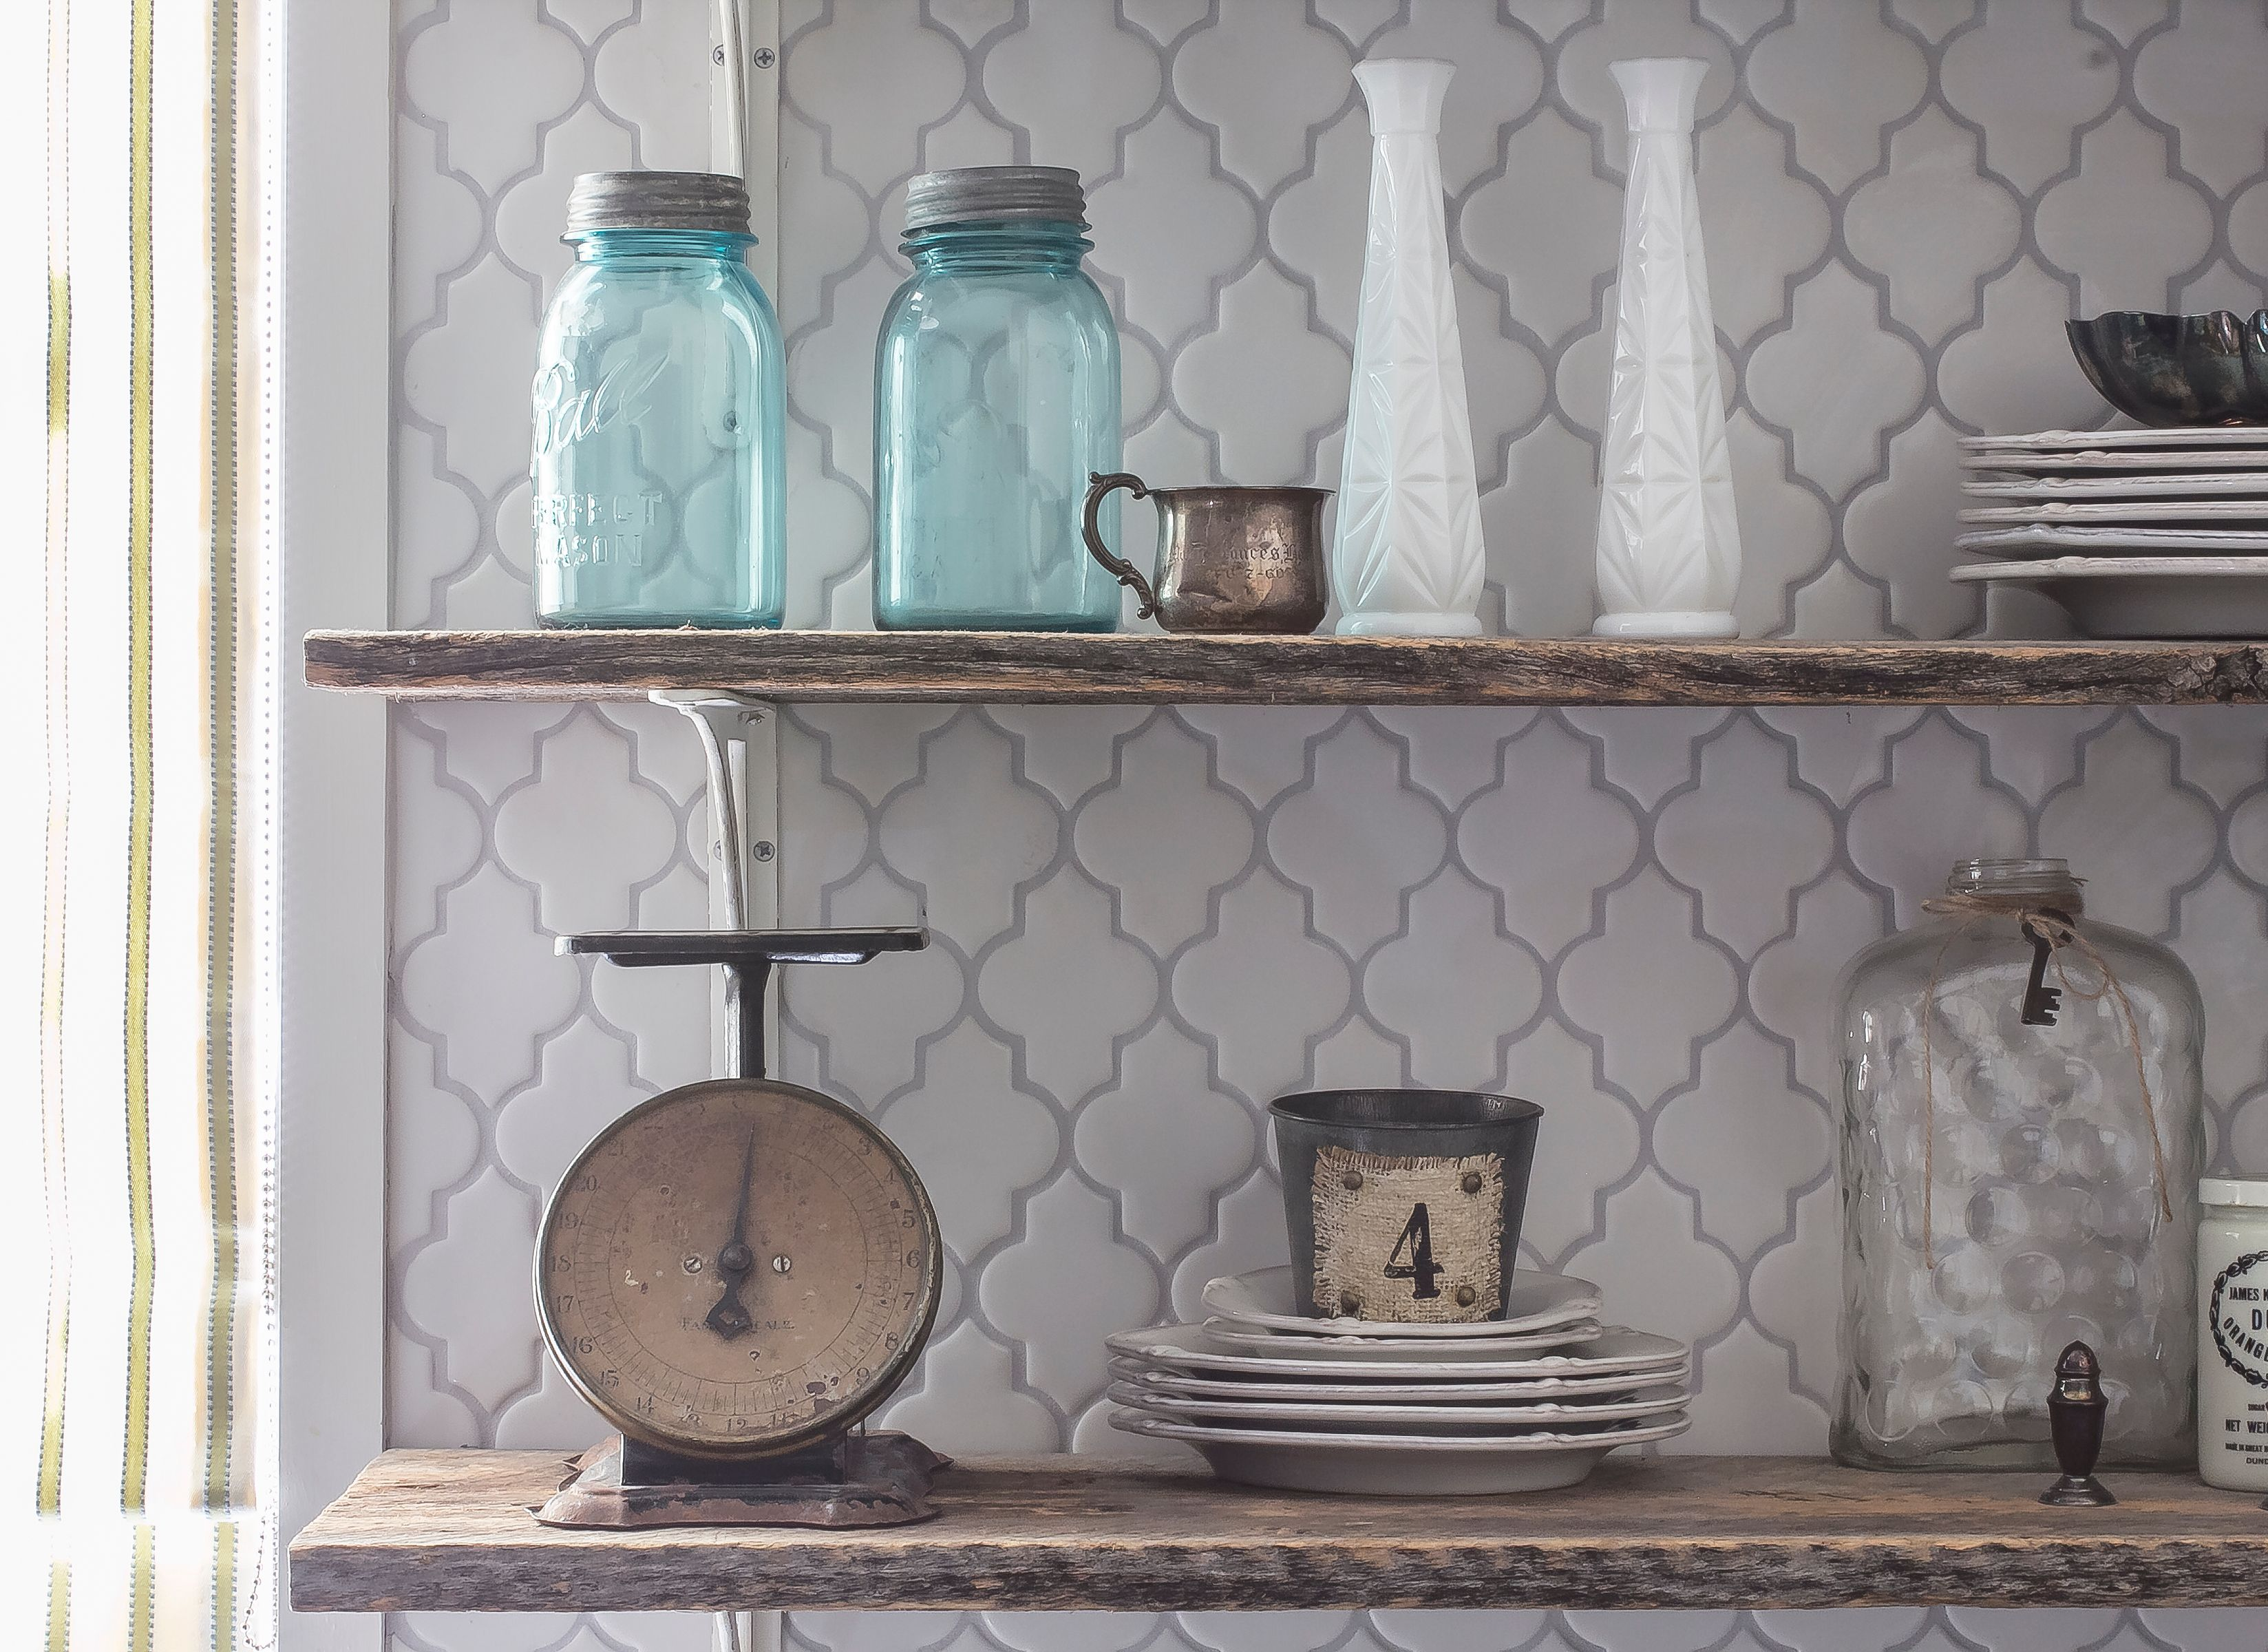 woodstock kitchen shelves 2.jpg